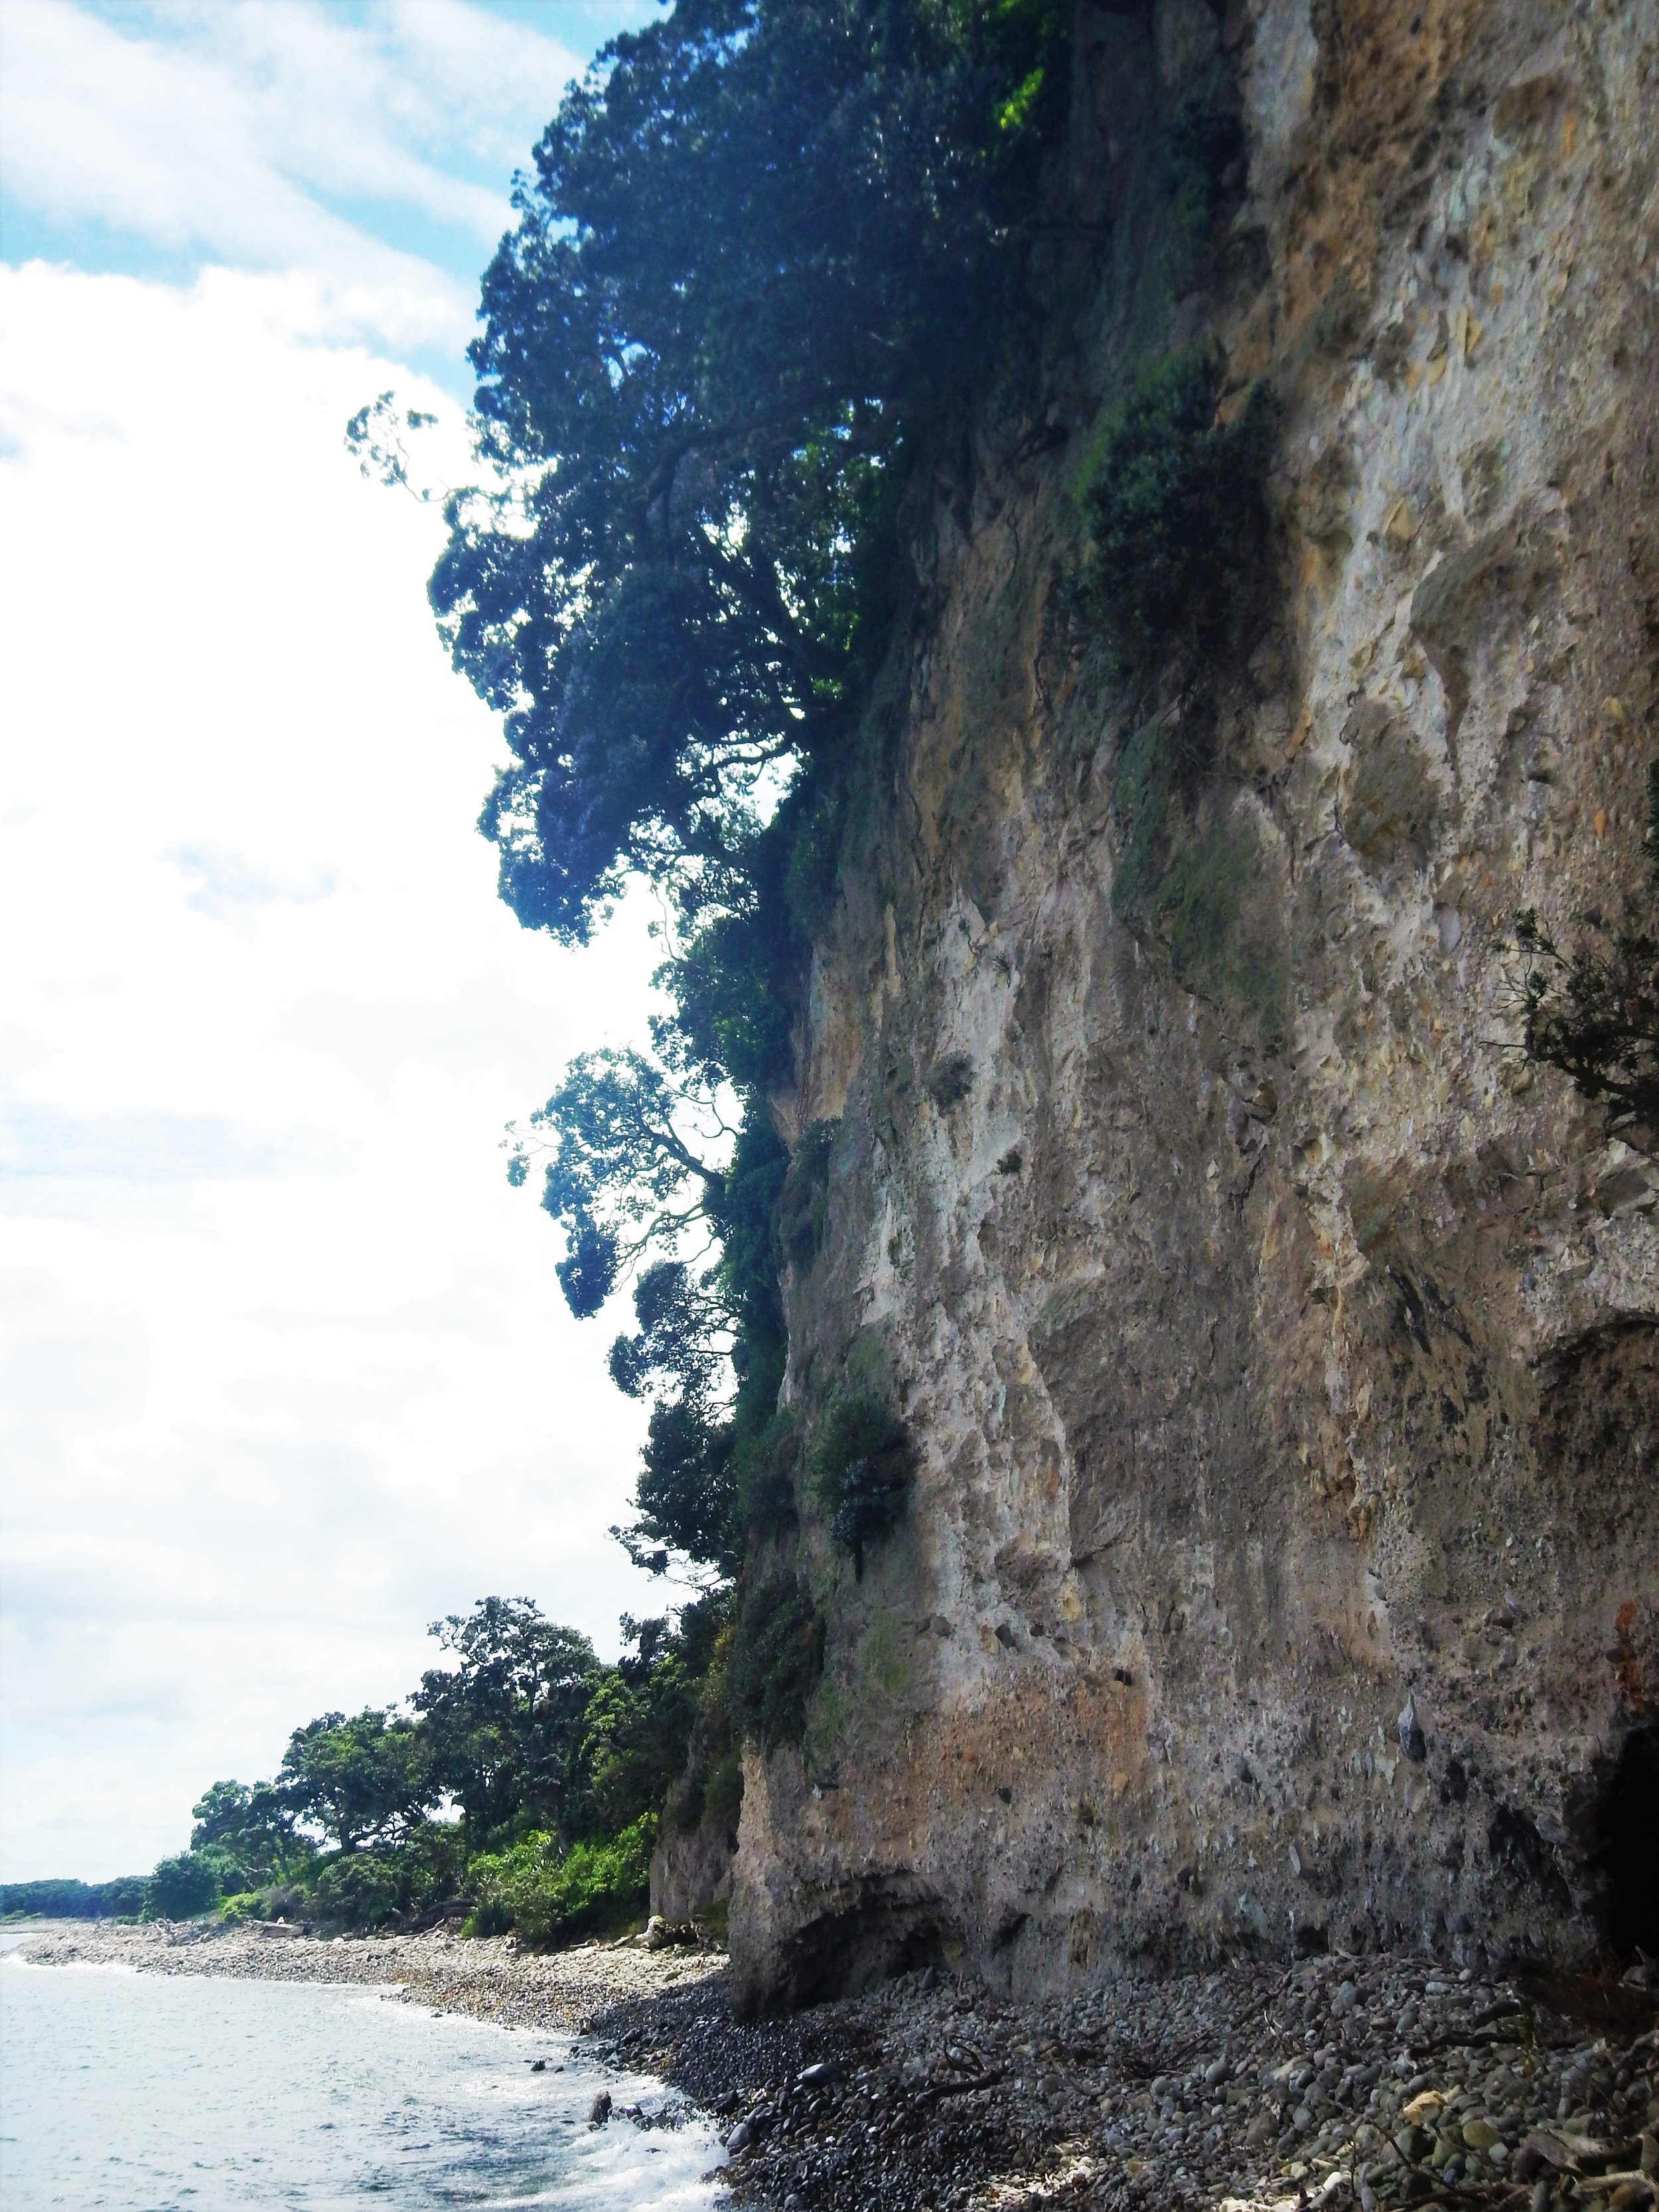 Steep cliffs are a prominent feature of the island. © Eli Sooker